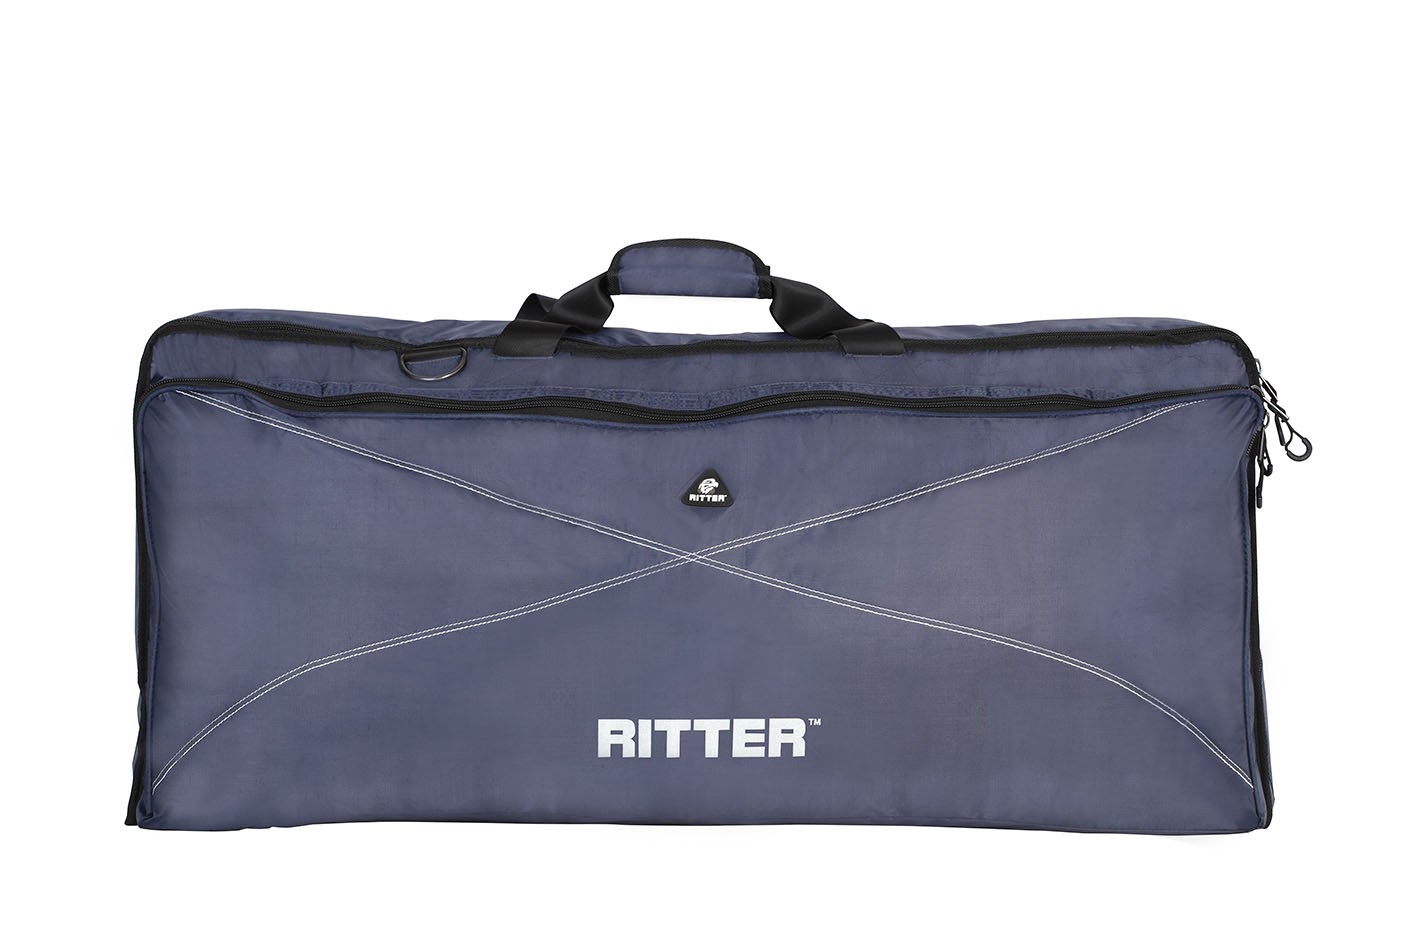 Ritter RKP2-65/BLW Keyboard Bag 1470x455x190 - Navy/Light Grey/White